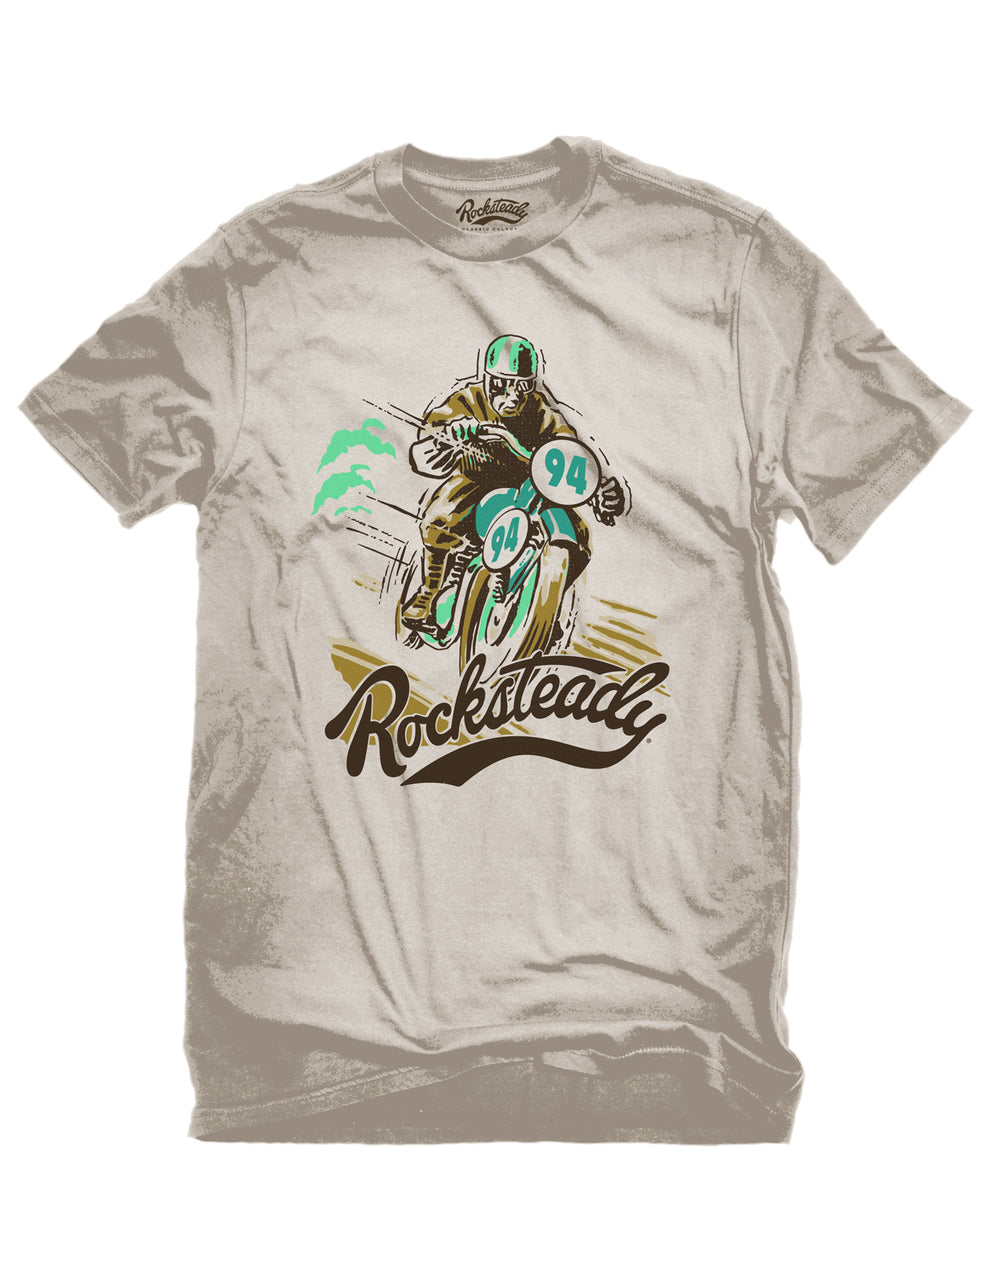 Steady Rocksteady Solo Racer Mens Tee